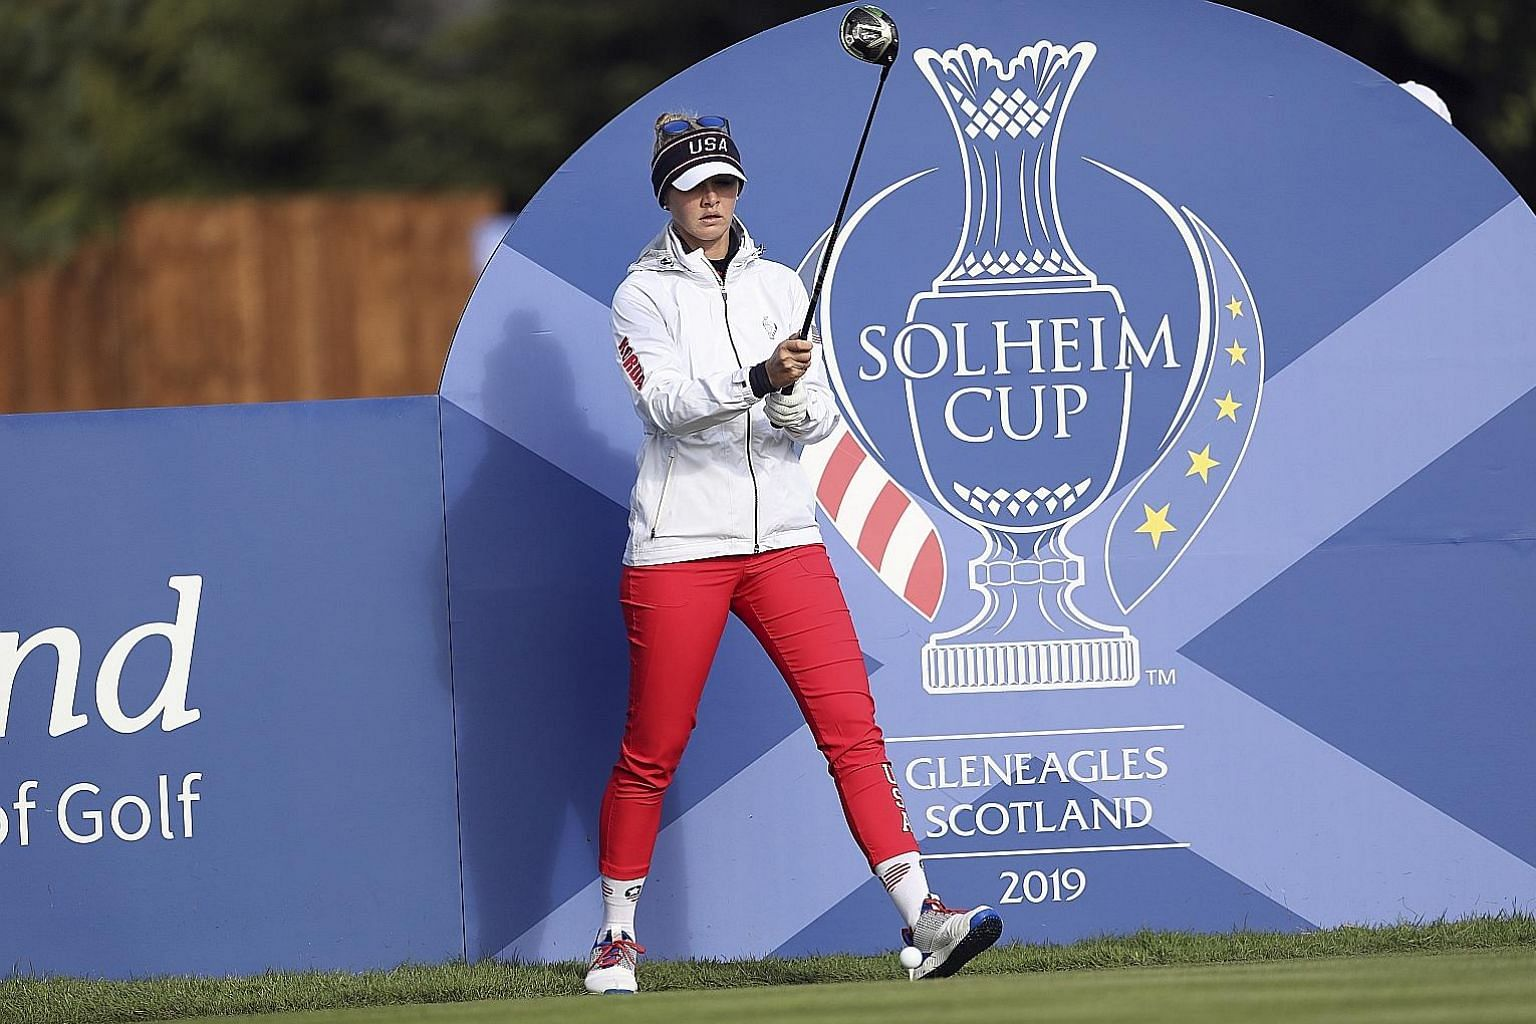 American Jessica Korda lining up her drive on the 14th hole during a practice round for the Solheim Cup on Wednesday. The US are hoping for a third successive victory in the biennial tournament.